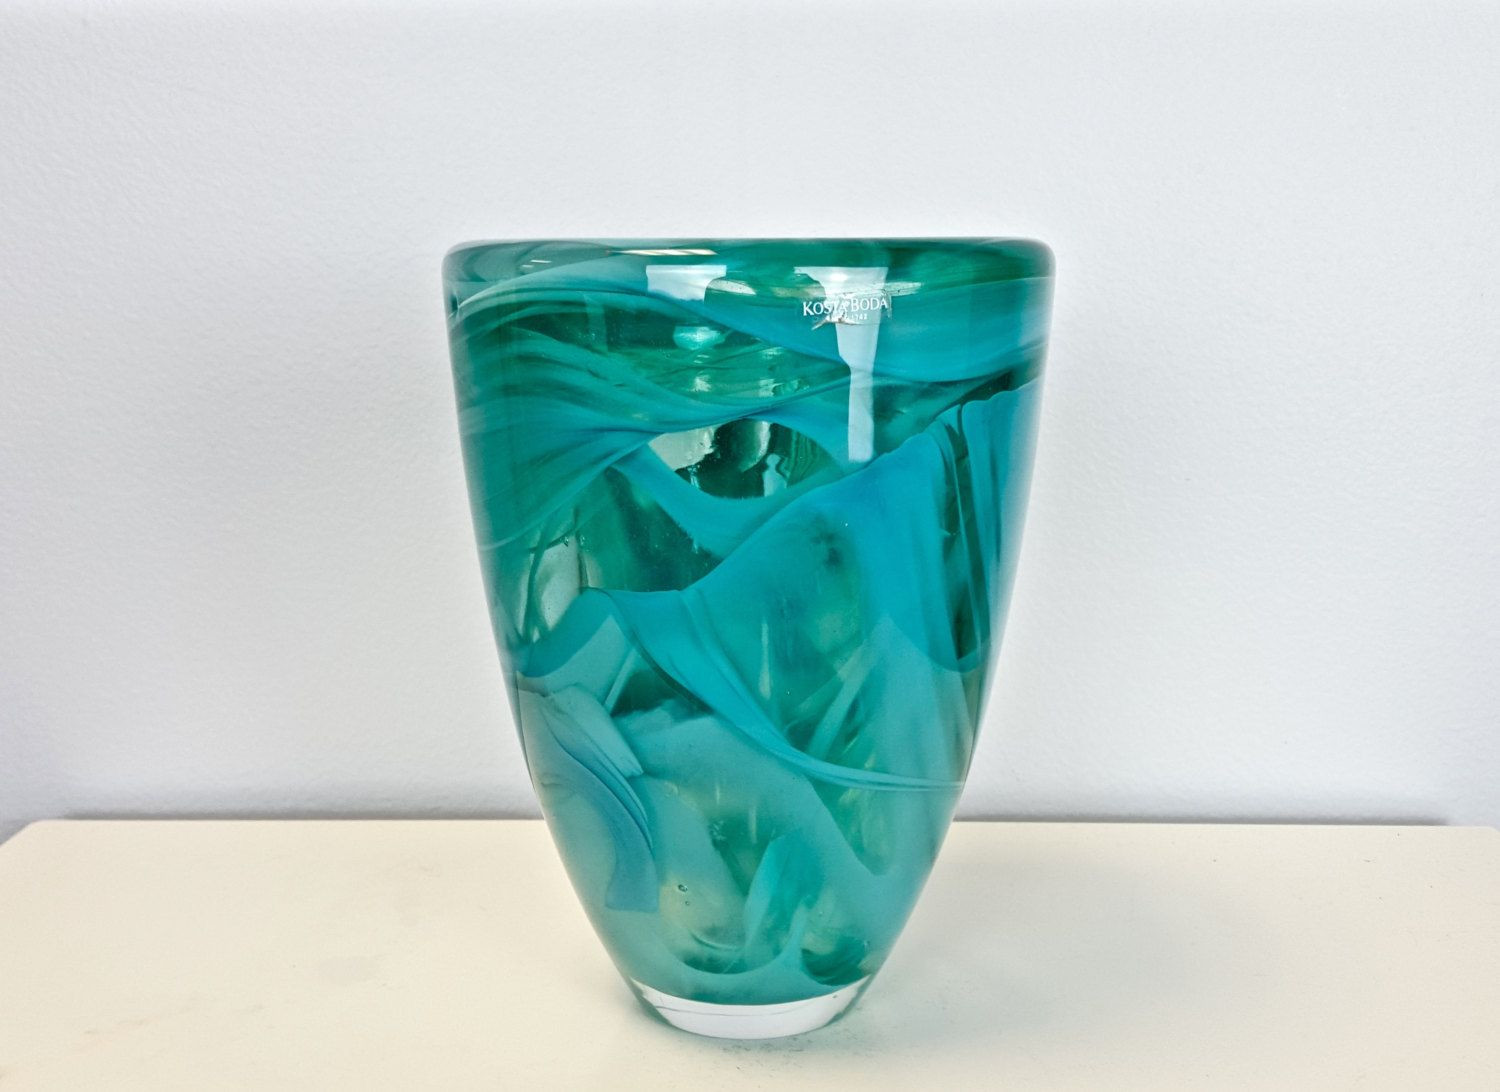 Cheap Glass Vases Near Me Of Vintage Kosta Boda Aqua Art Glass Vase Kosta Boda Aqua Votive for Vintage Kosta Boda Aqua Art Glass Vase Kosta Boda Aqua Votive Candle Holder Turquoise Swirl Art Glass Vase Scandinavian Decor Swedish 95 00 Usd by